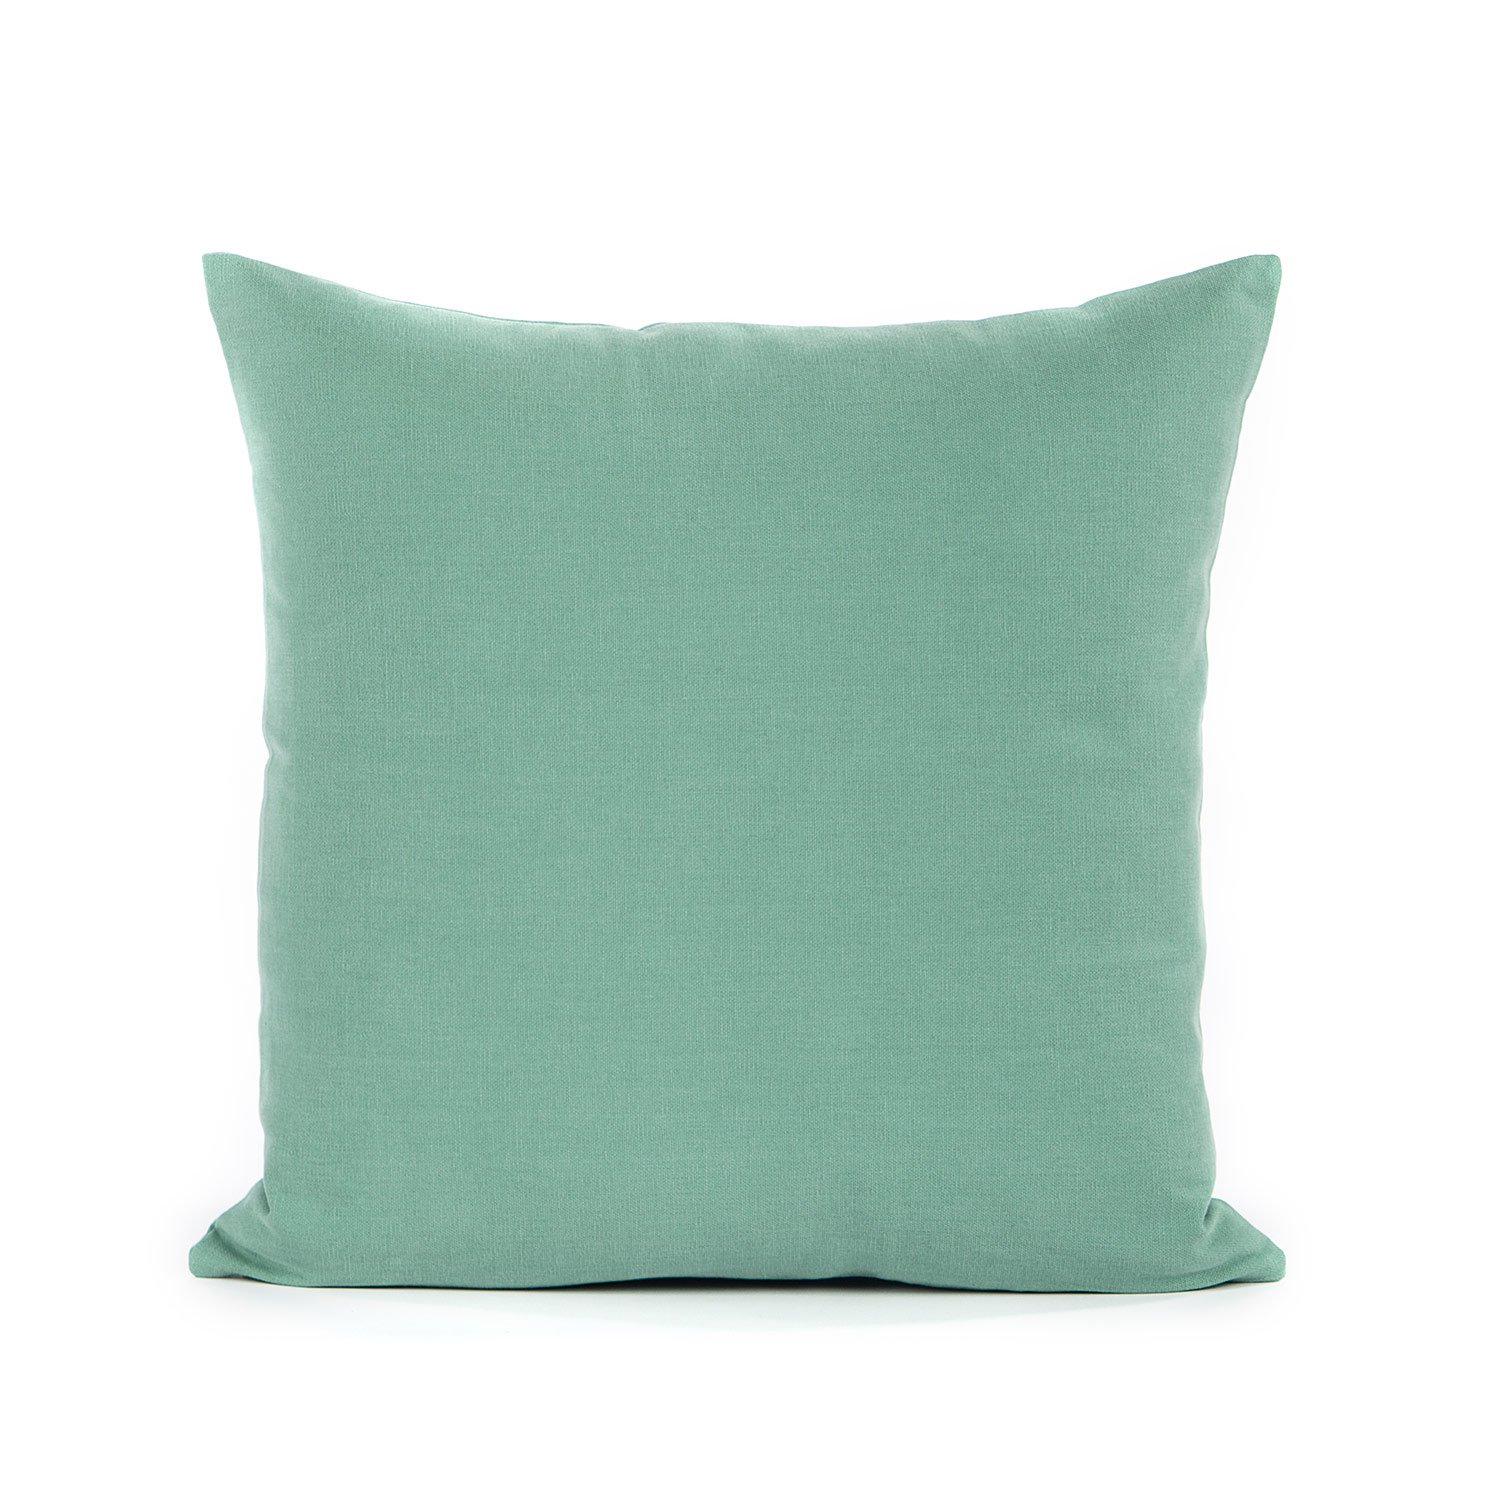 "16"" X 16"" Seafoam Green Throw Pillow Cover"